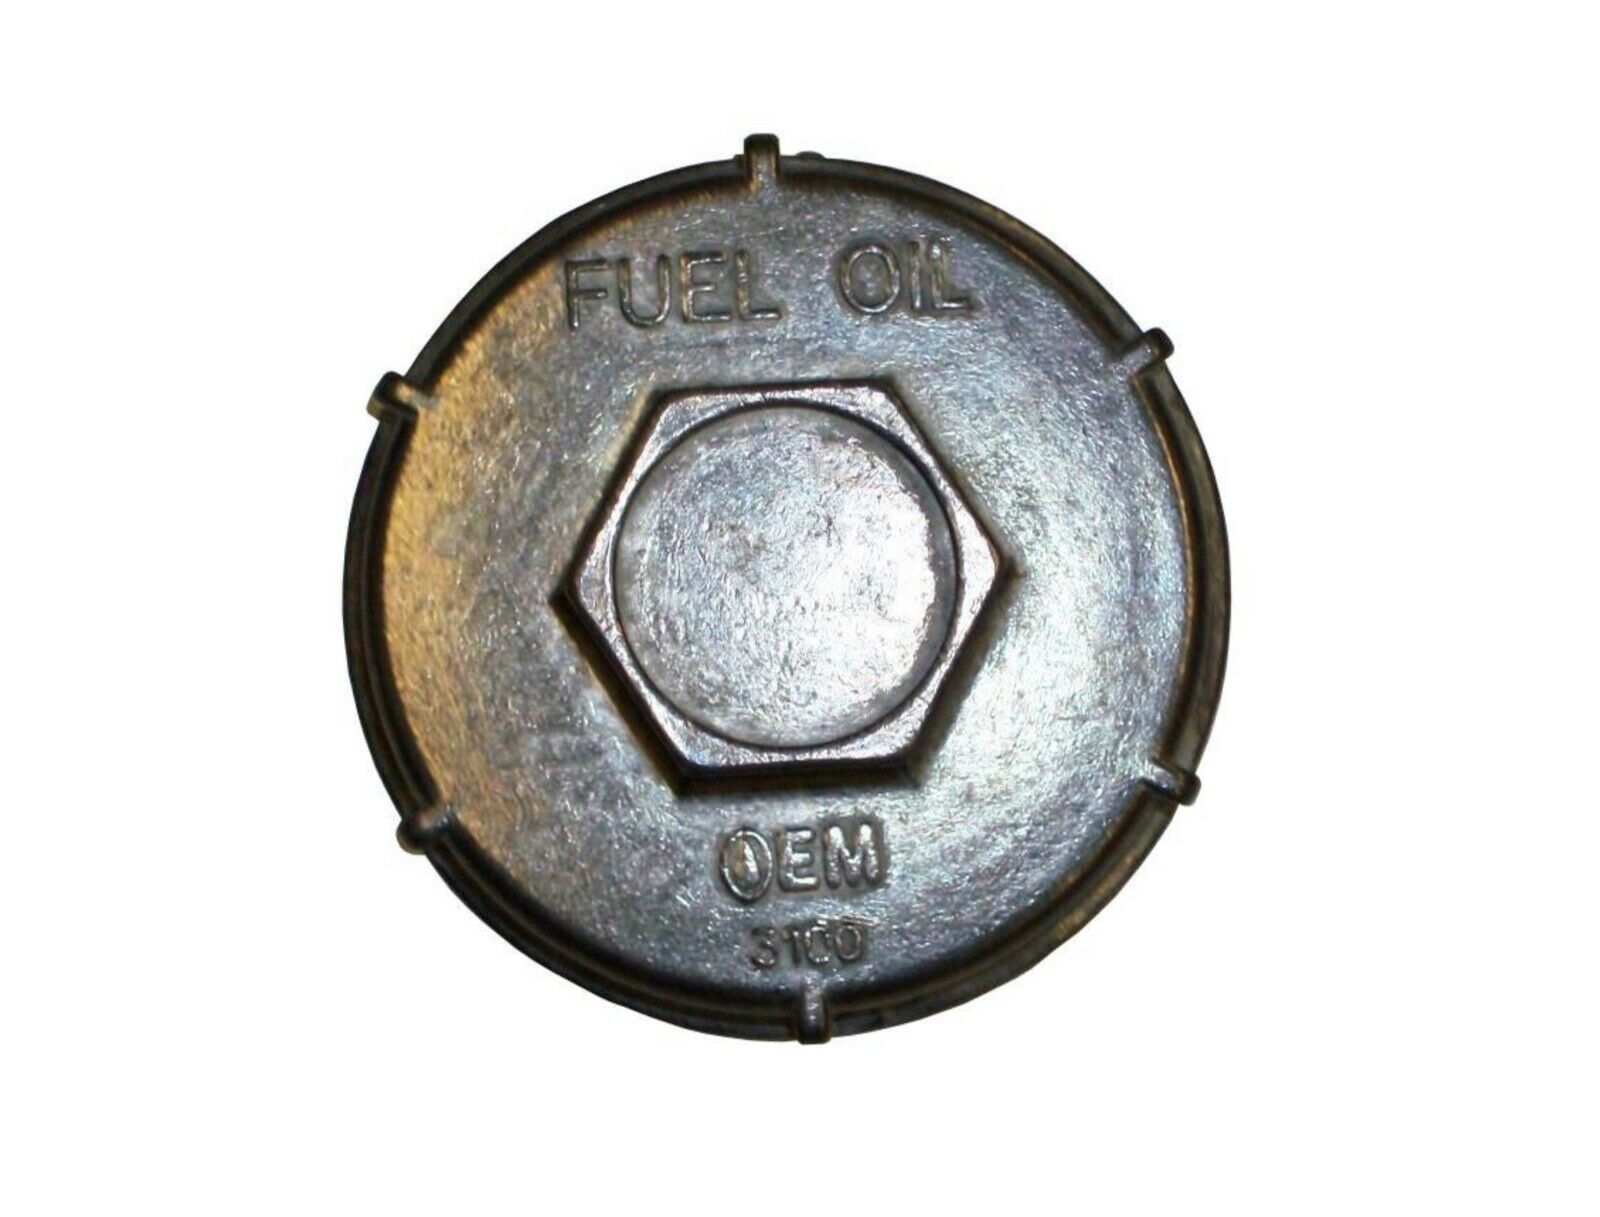 Primary image for Beckett Oil Tank Cap OEM 3100 Speed Fill Cap Made of Zinc